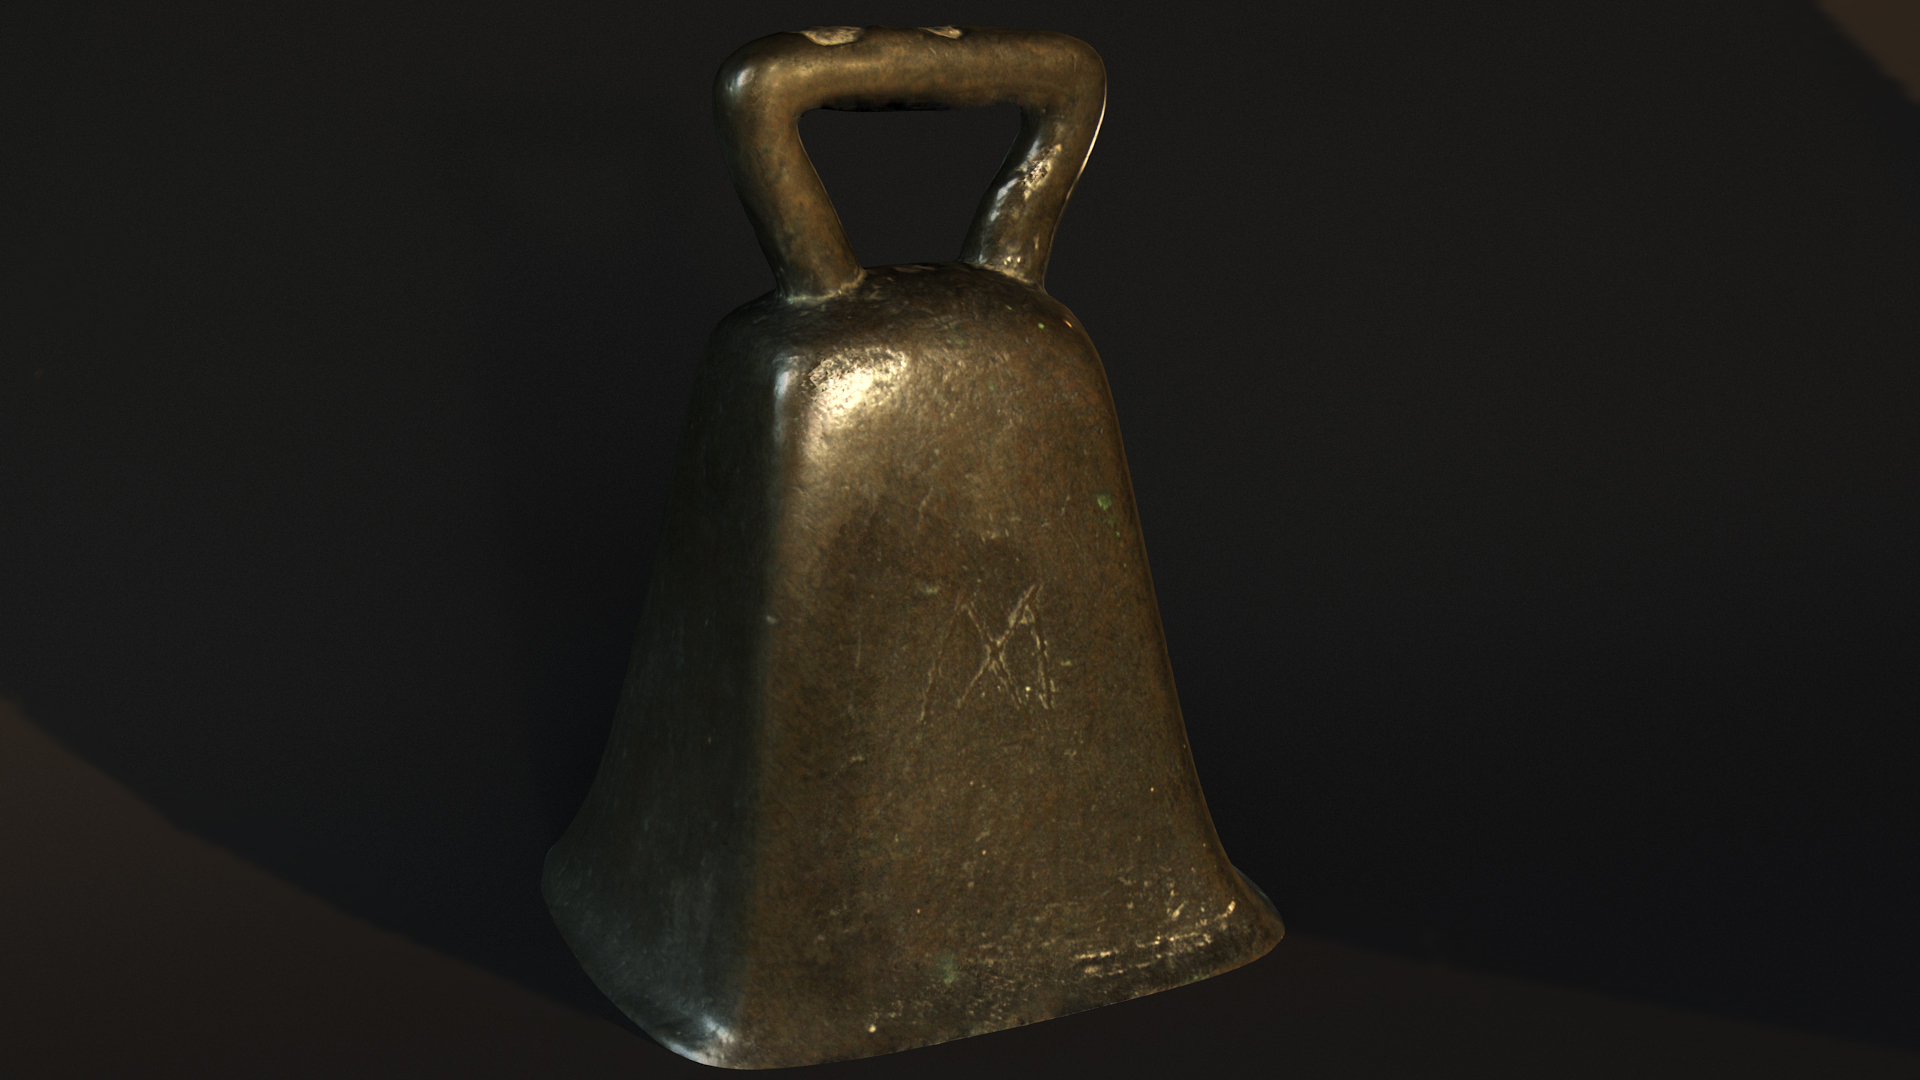 Textured model of the Forteviot bell complete with CGI lighitng.